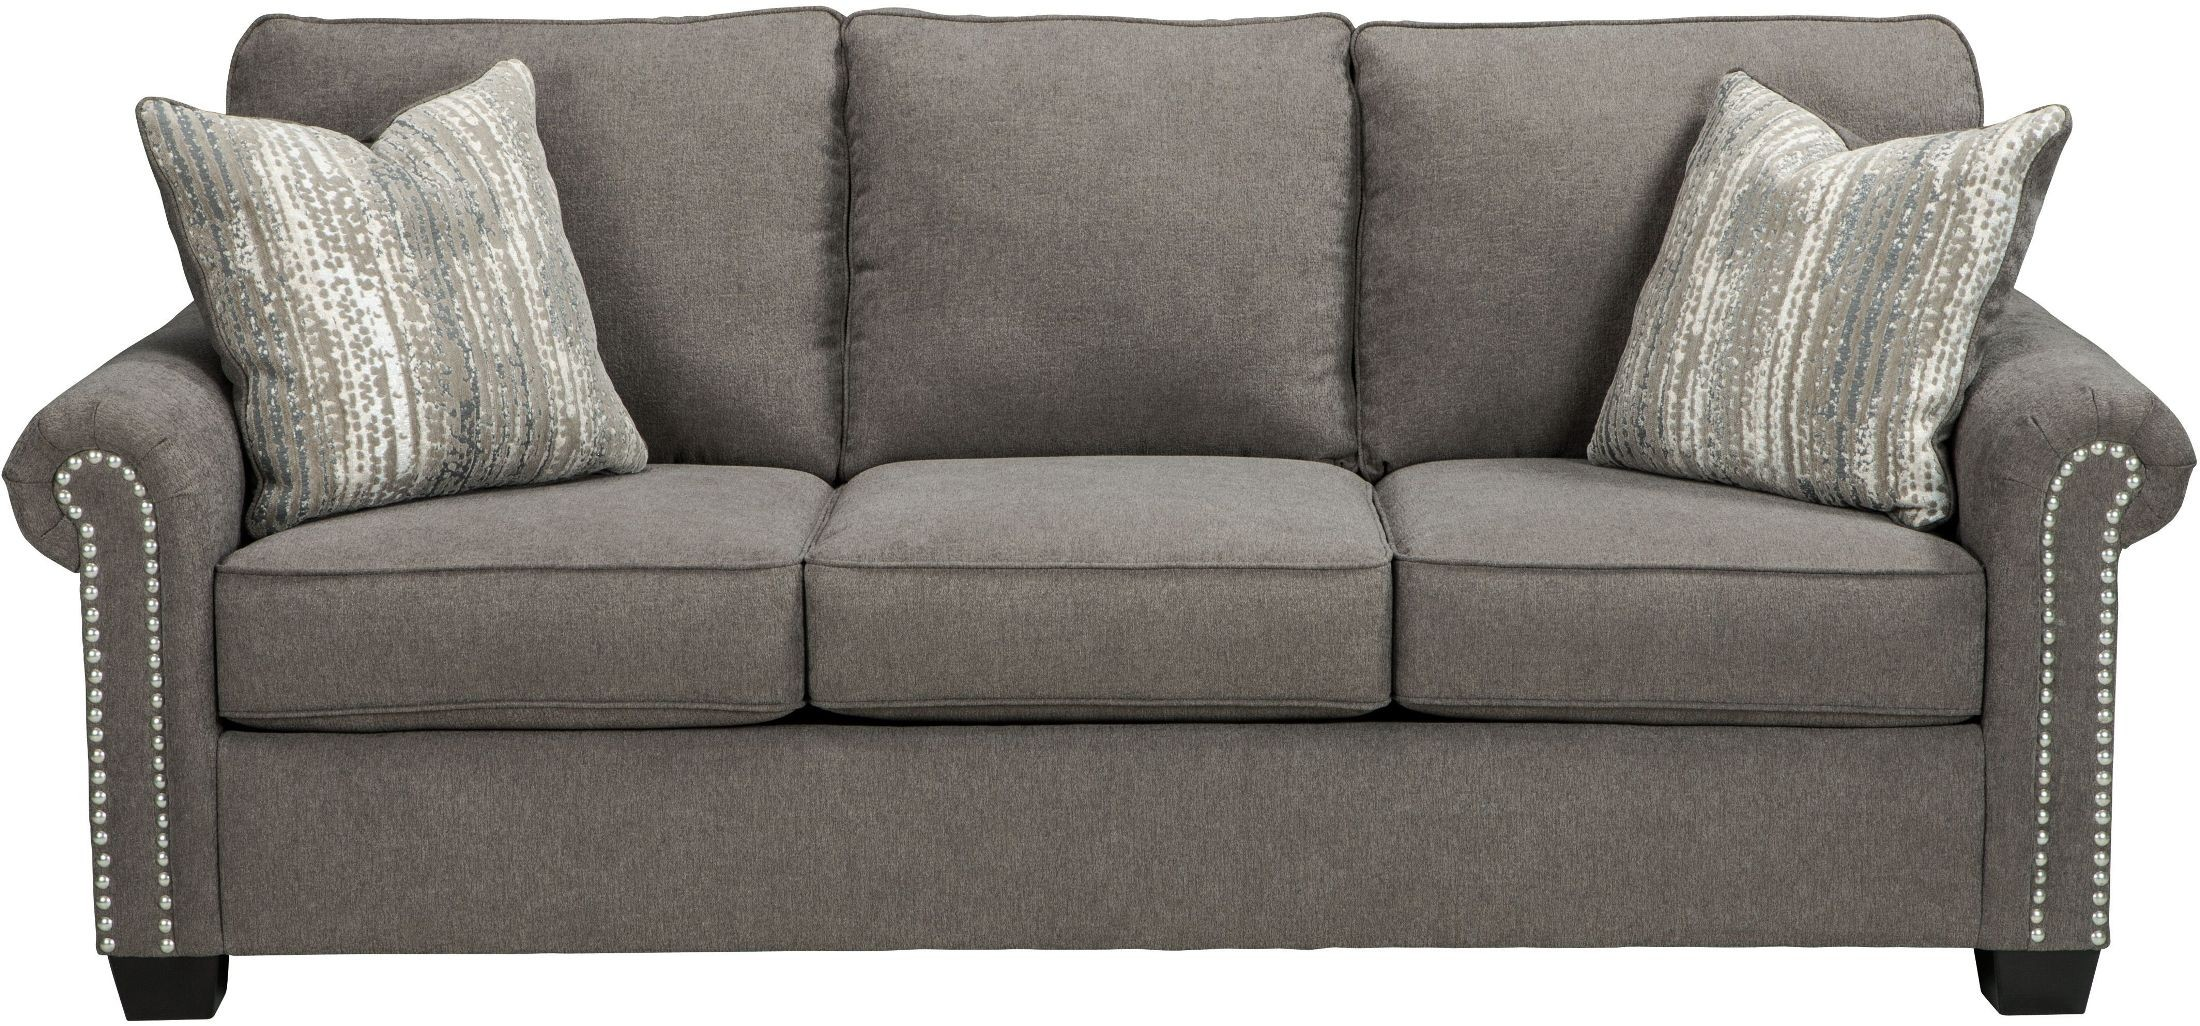 Gilman charcoal living room set 9260238 ashley for Charcoal sofa living room